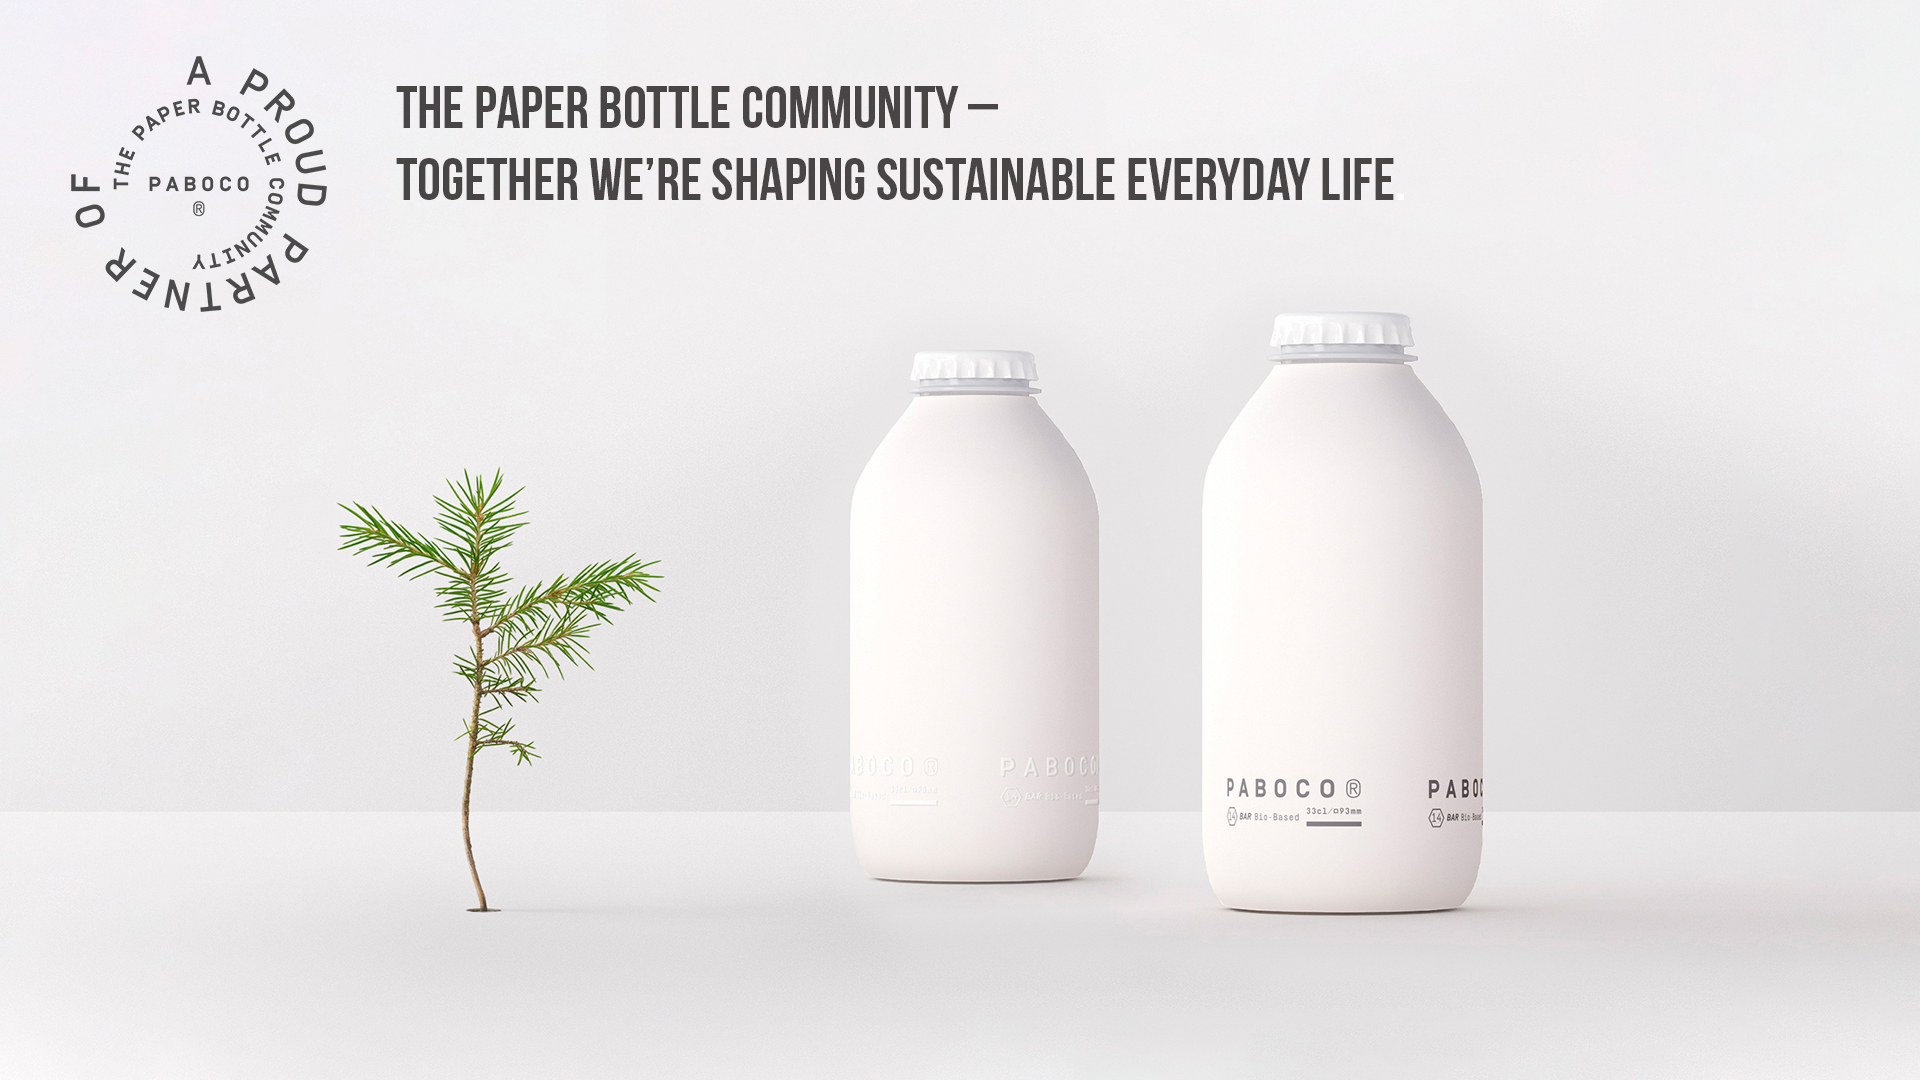 Revolutionary innovation: Teknos cooperates with major brands in developing a recyclable paper bottle